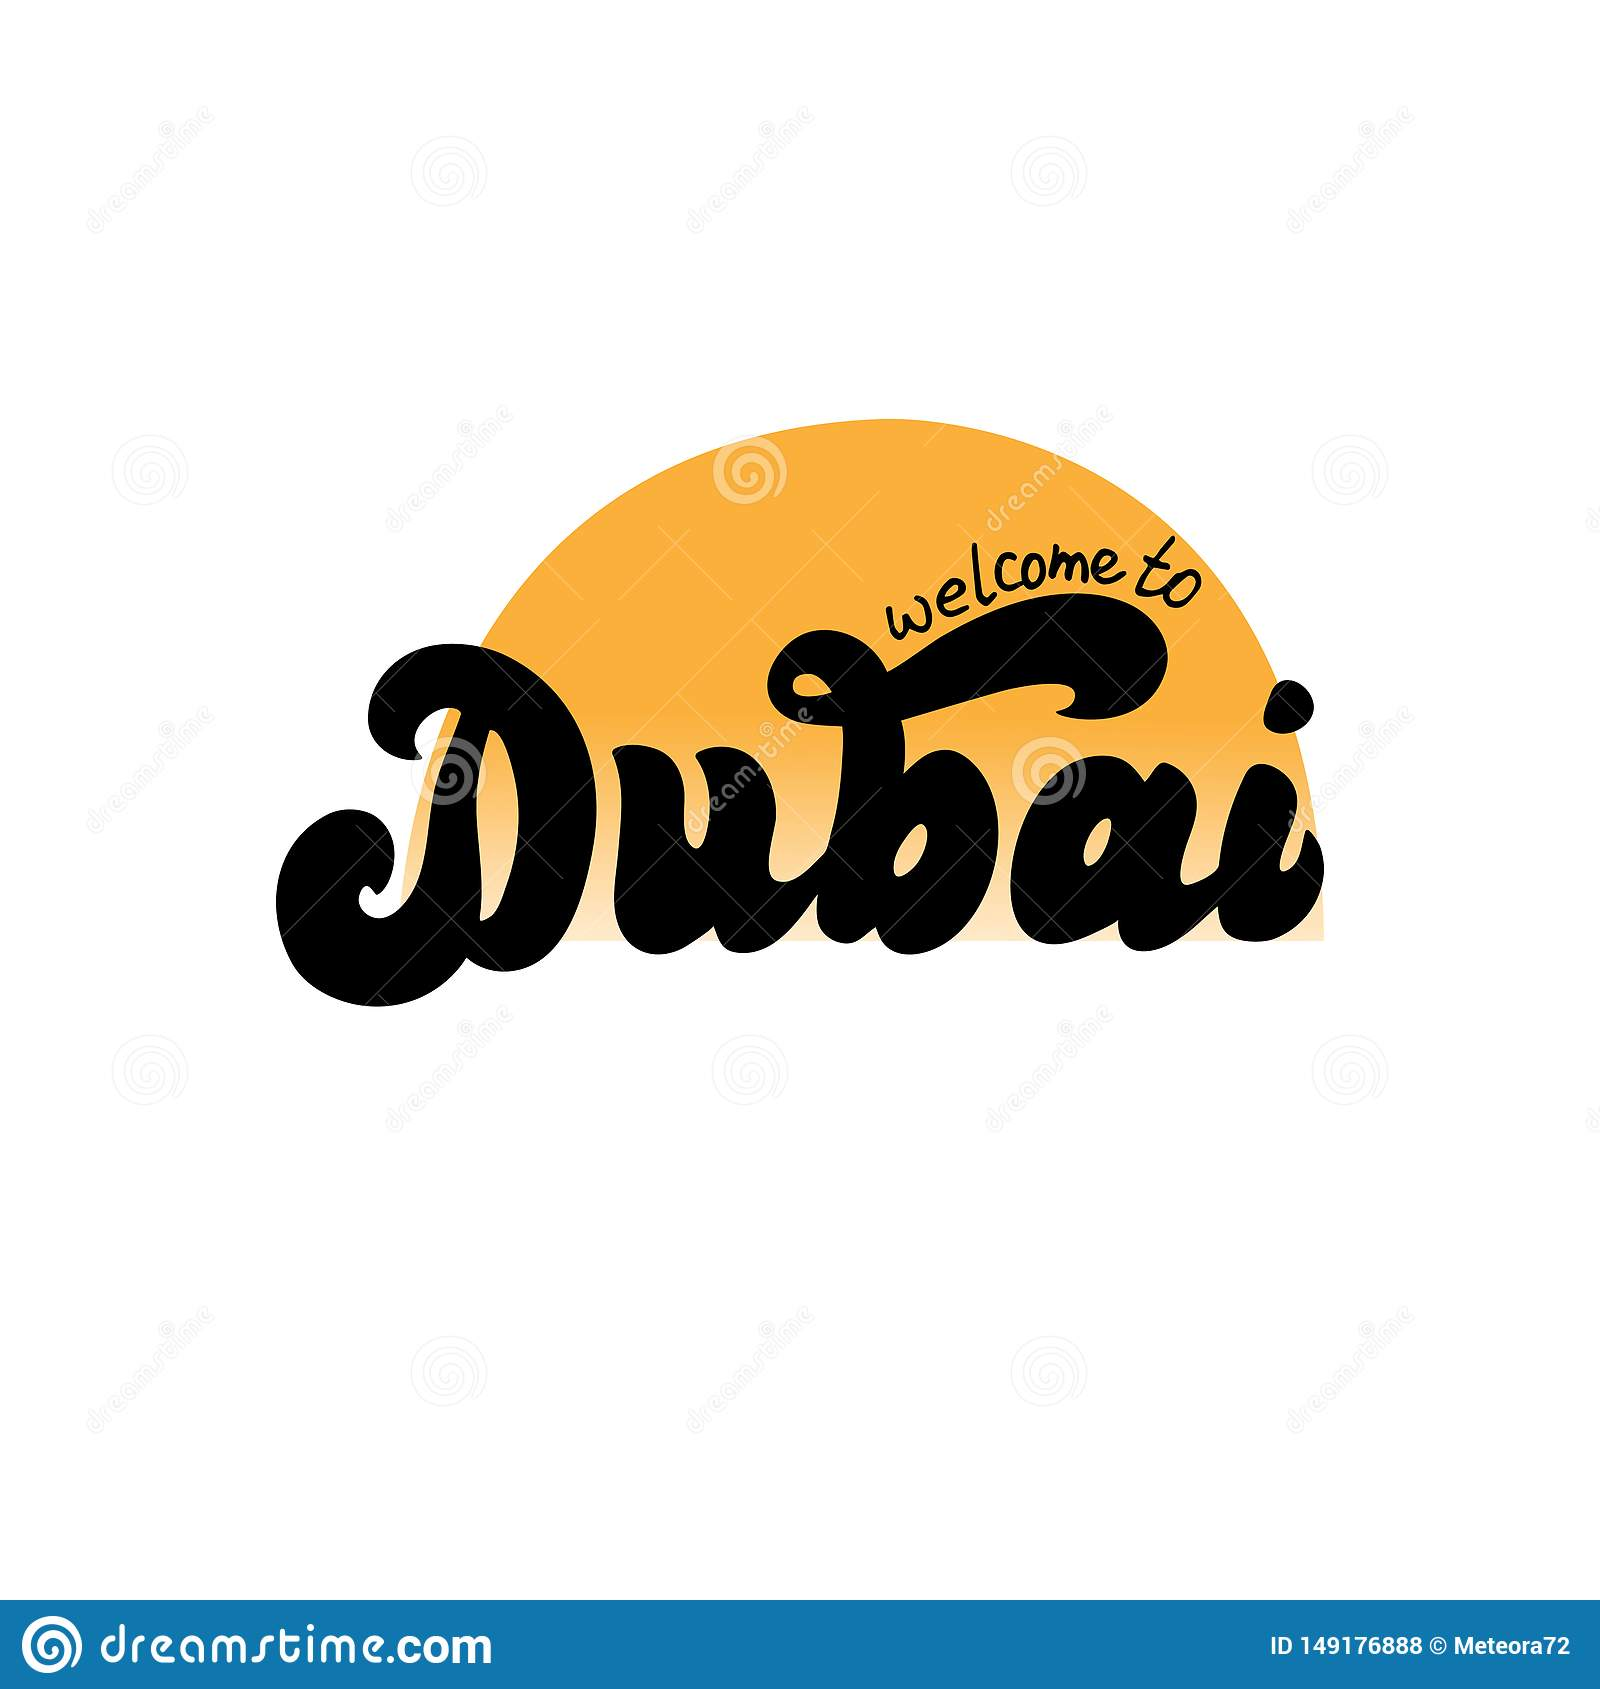 Dubai Welcome To Hand Drawn Logotype Modern Template For